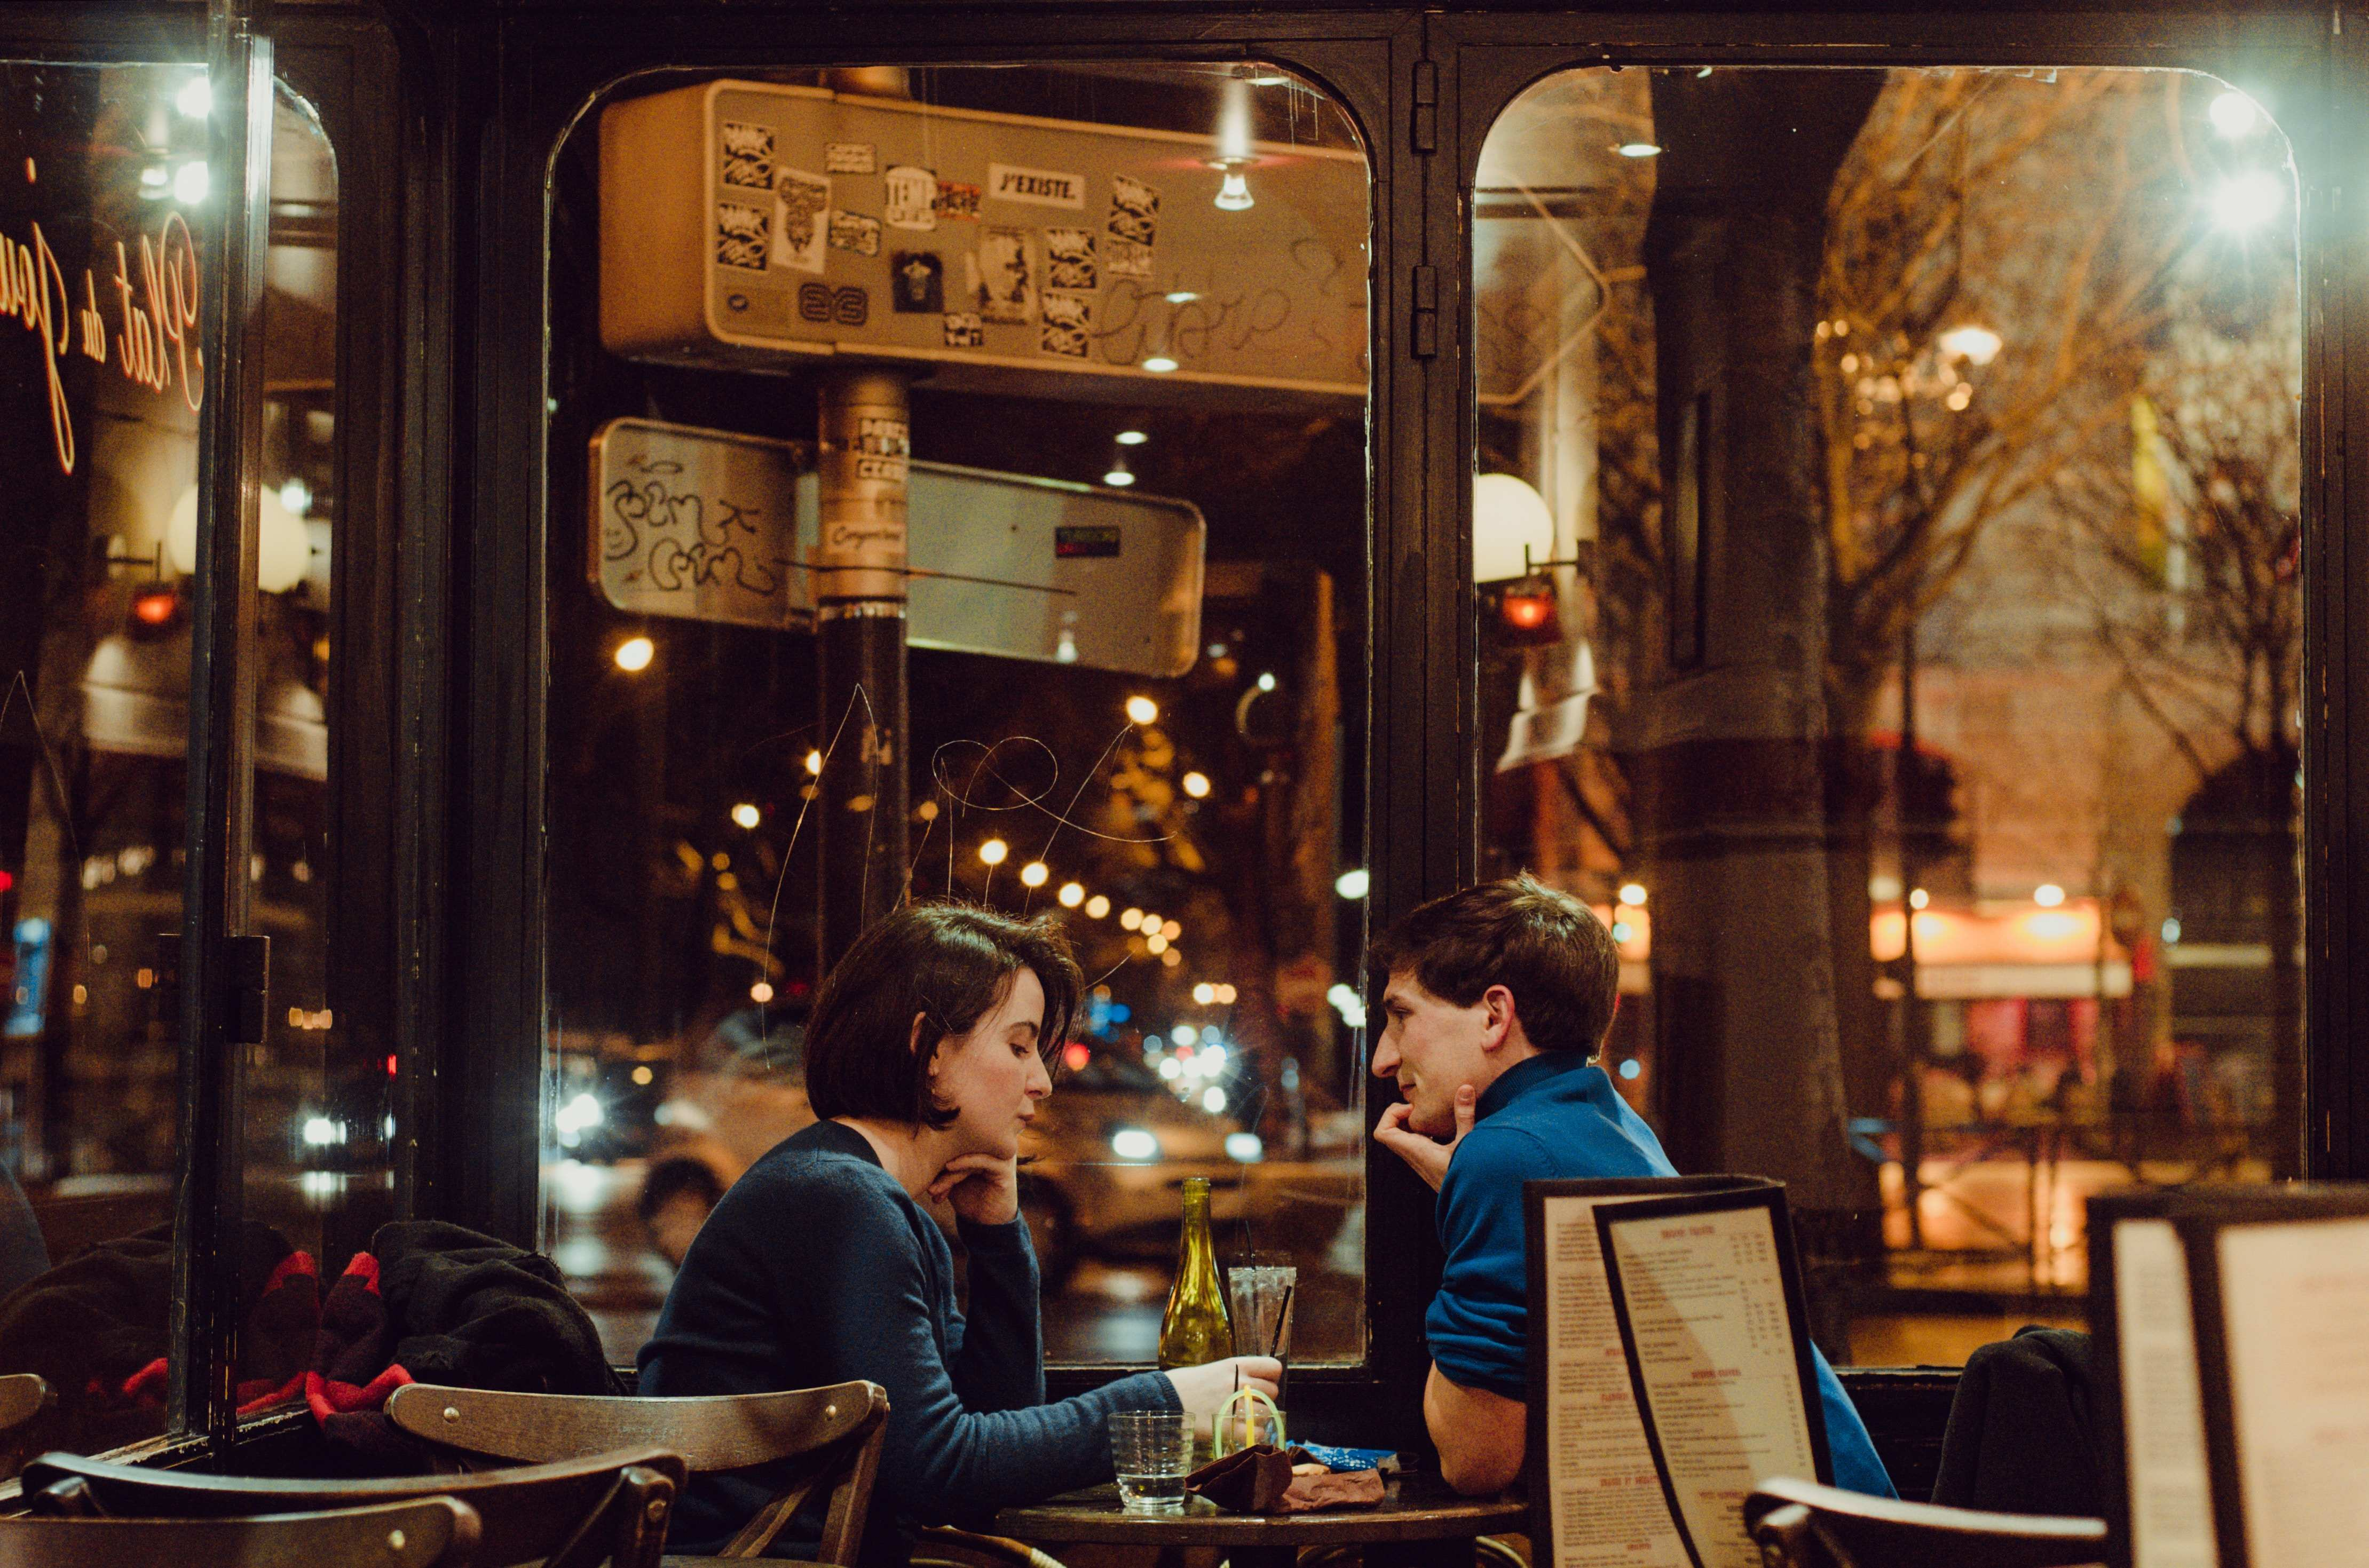 relationship man and women in restaurant on date